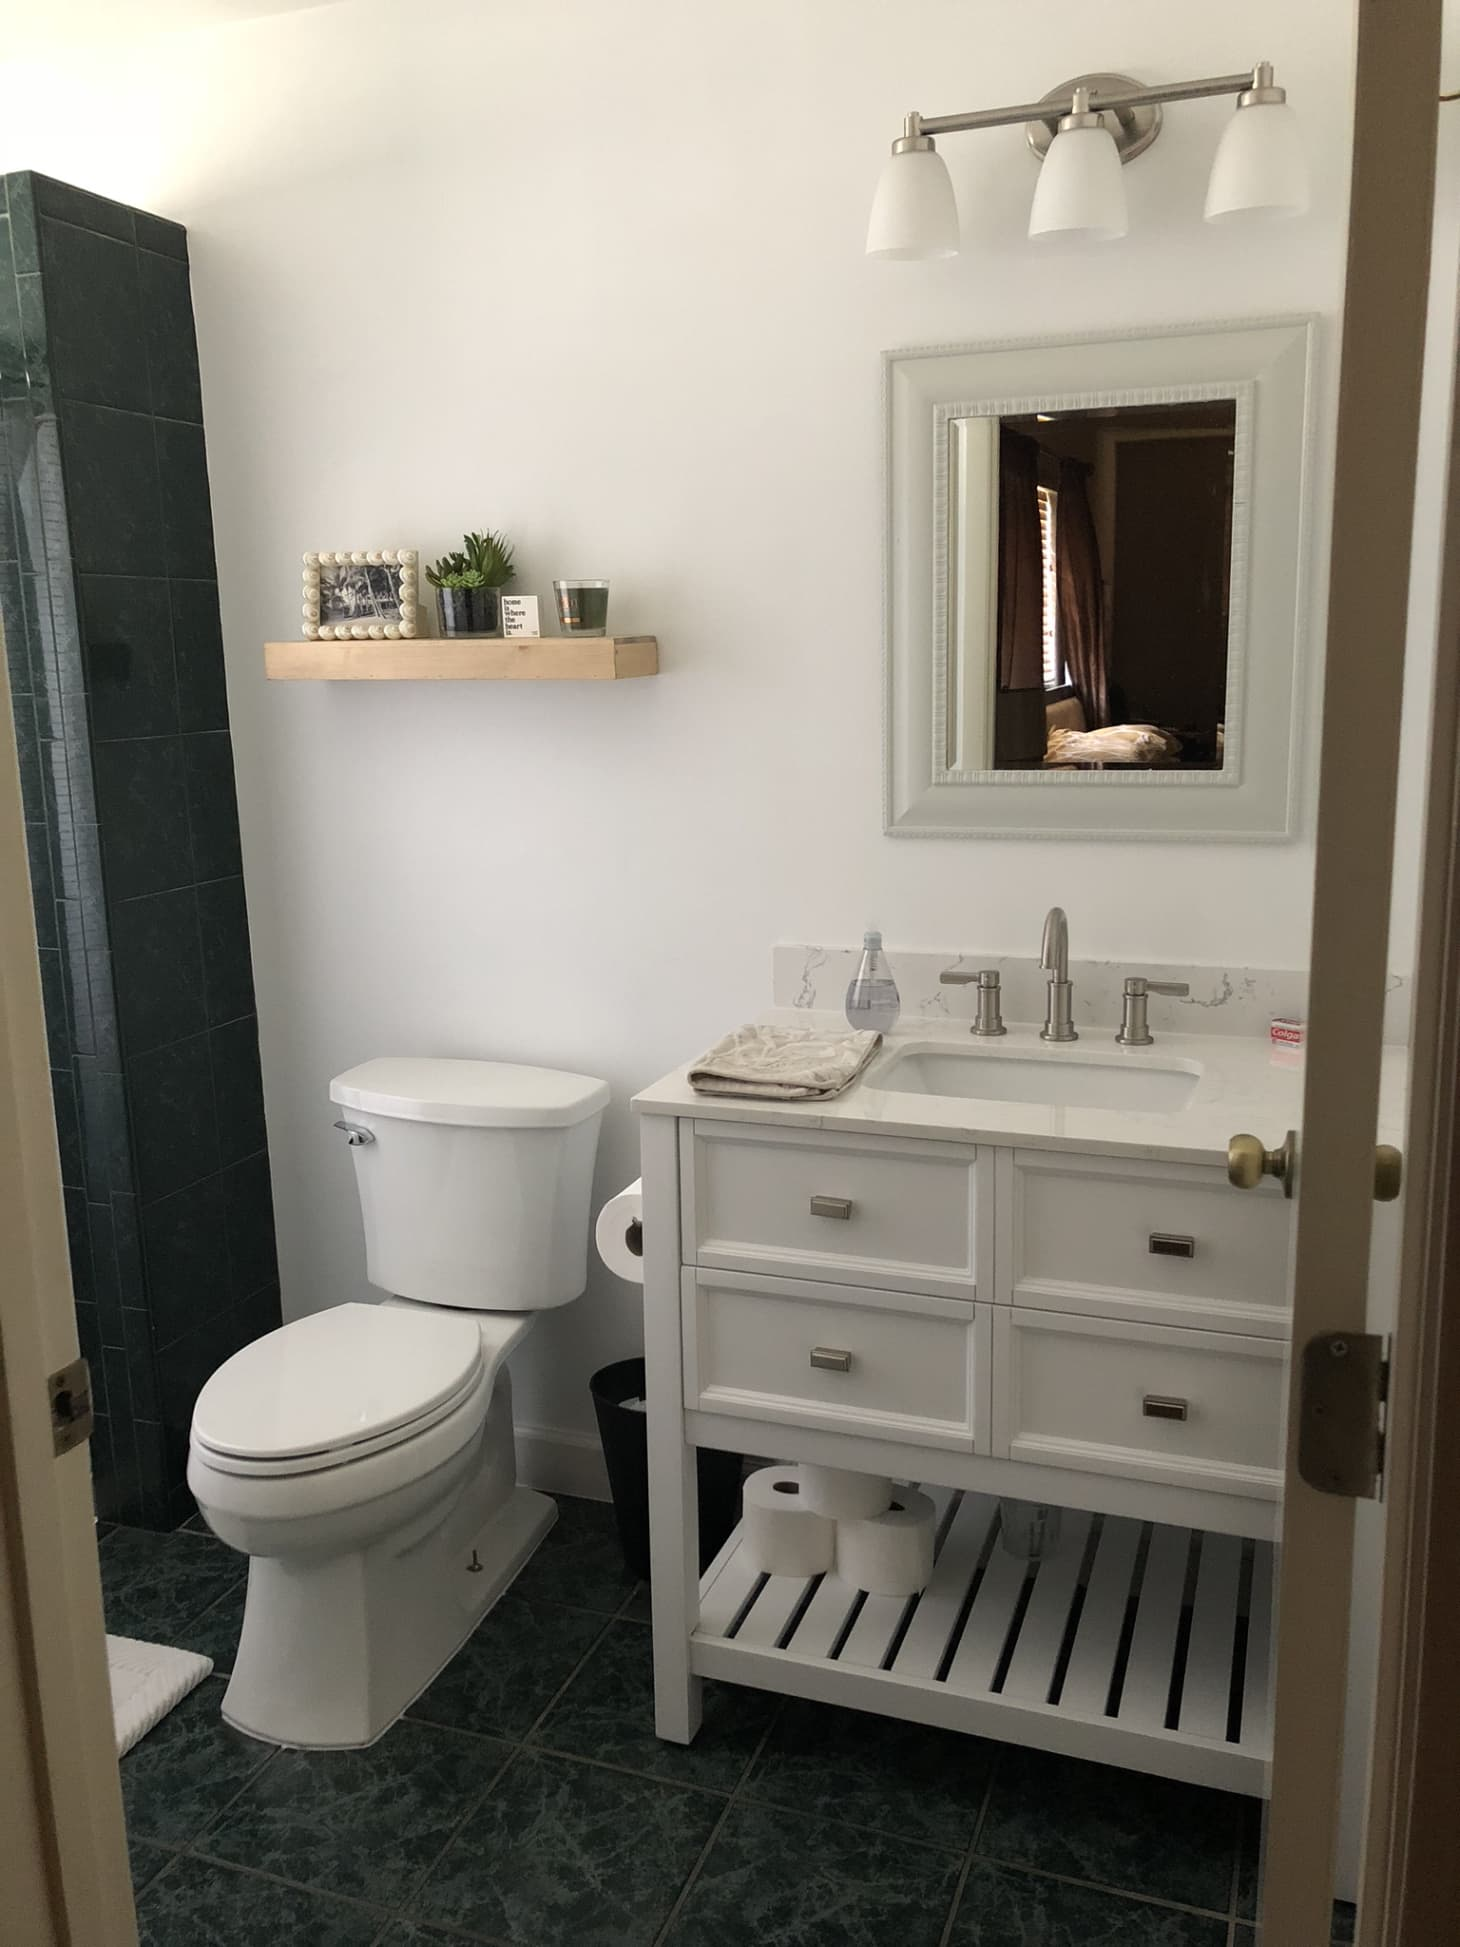 Cheap Bathroom Remodel Ideas That Look Expensive Apartment